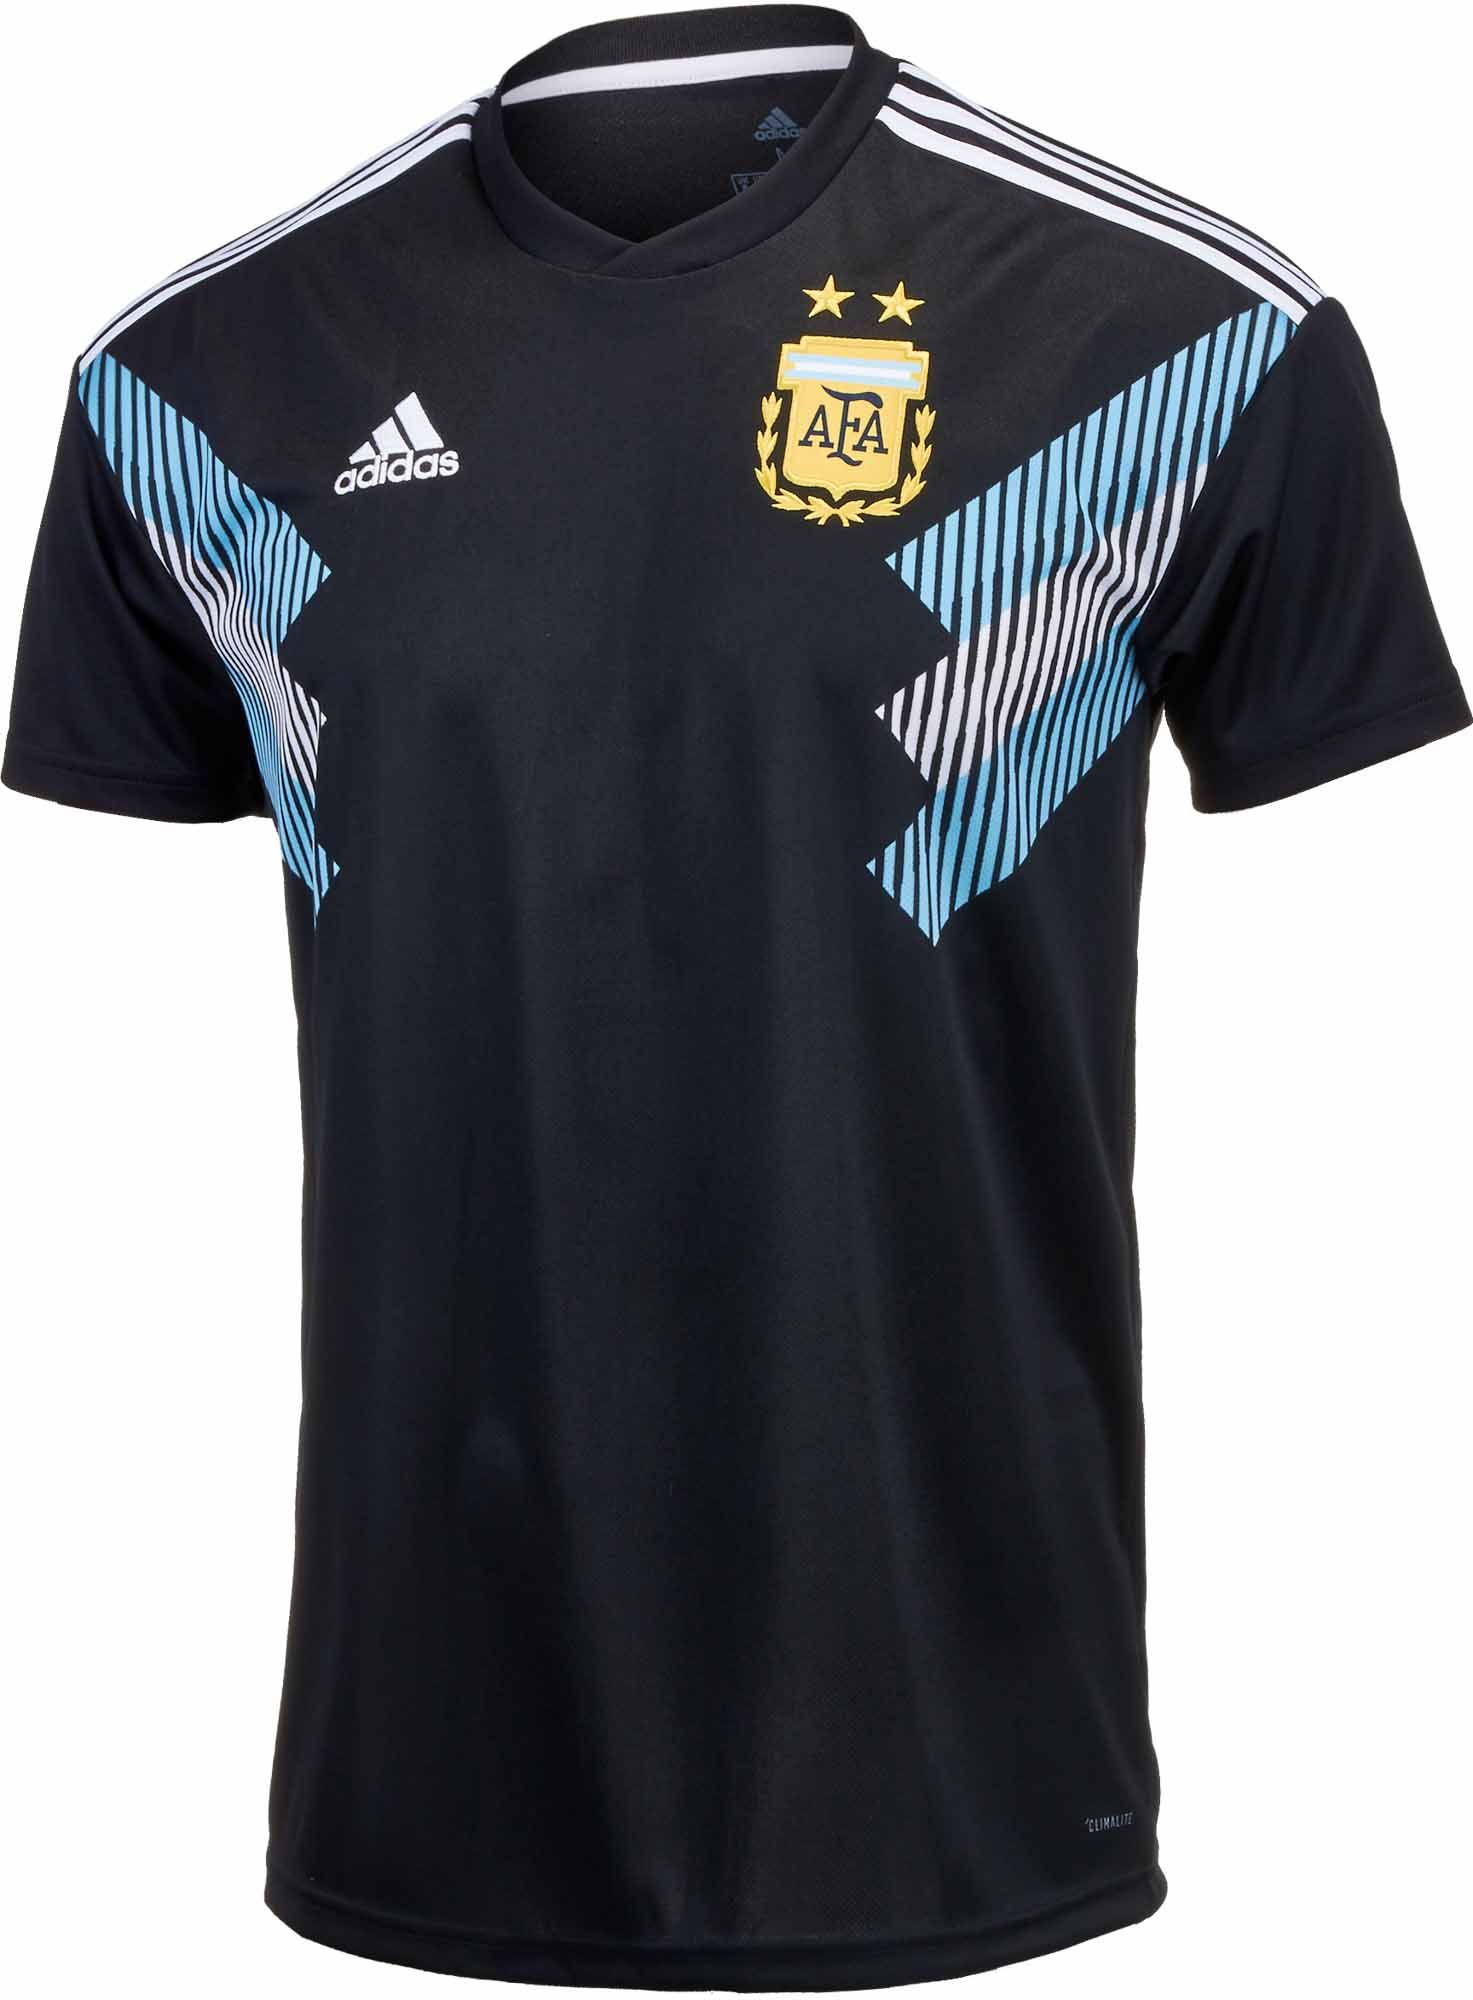 33109c780 2018 adidas Argentina Away Jersey. Buy it from SoccerPro